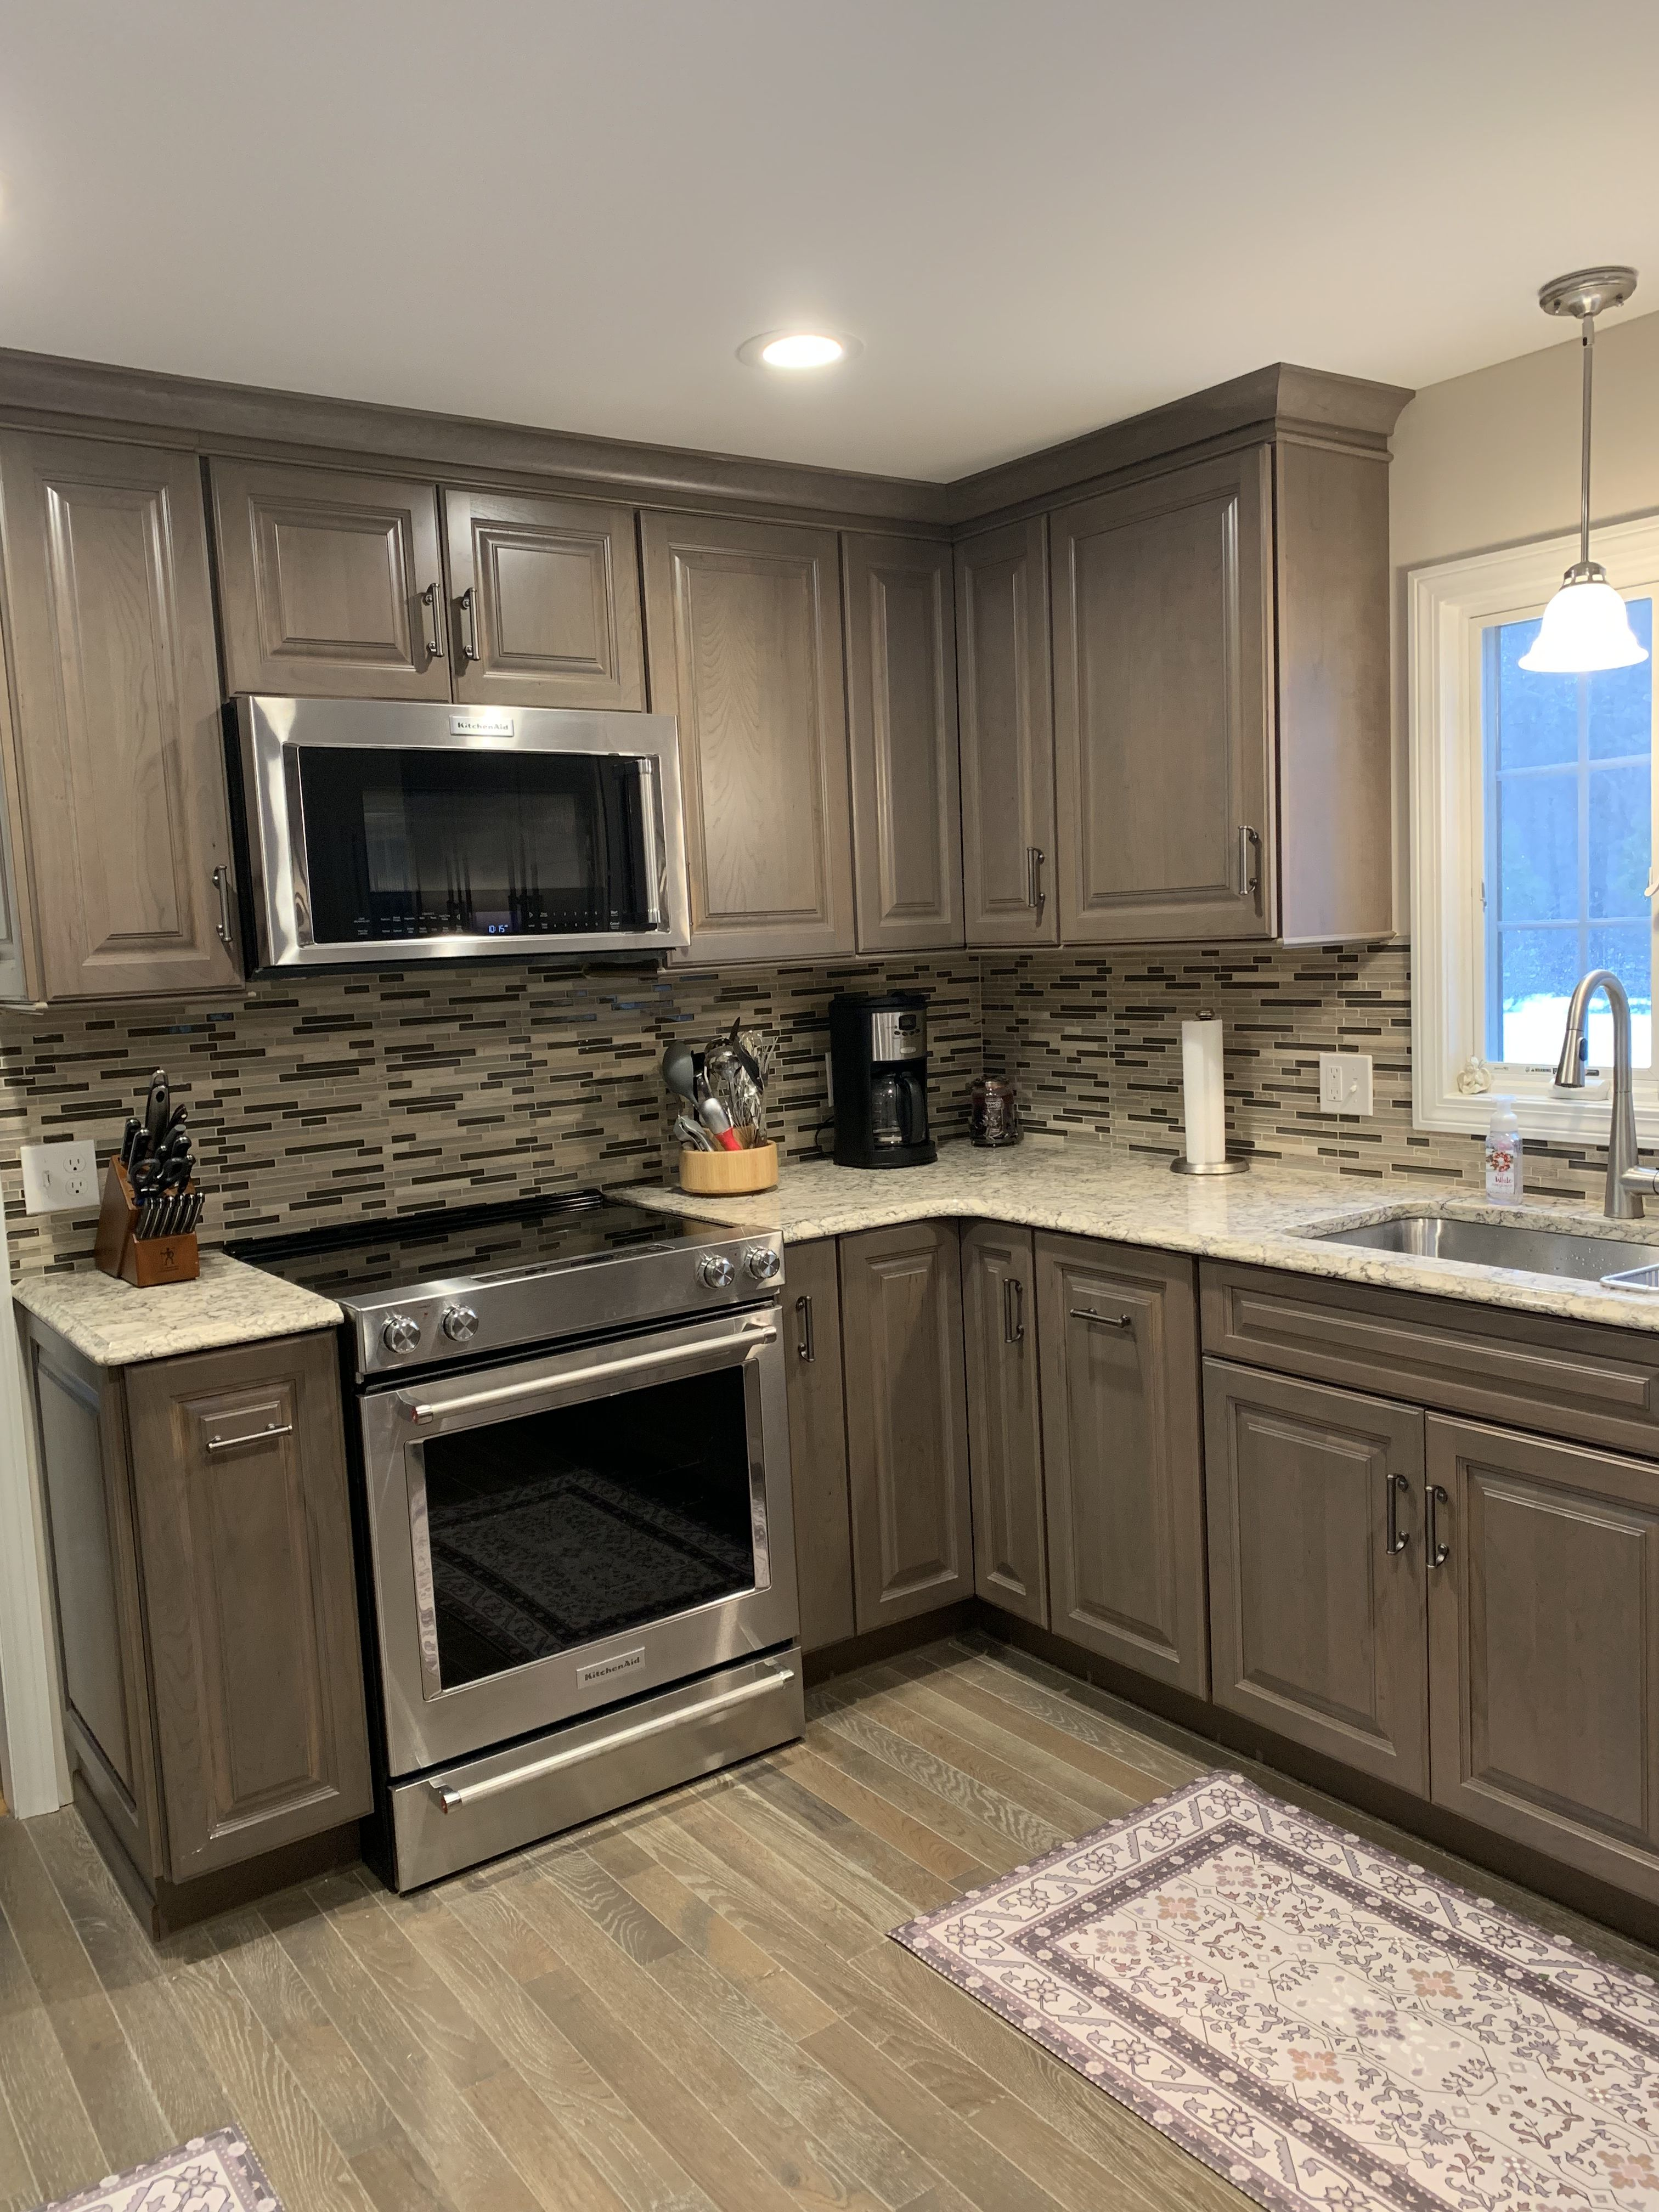 Thomasville Heather Grey Cabinets From Home Depot Mobile Home Kitchen Cabinets Kitchen Design Centre Kitchen Remodel Small